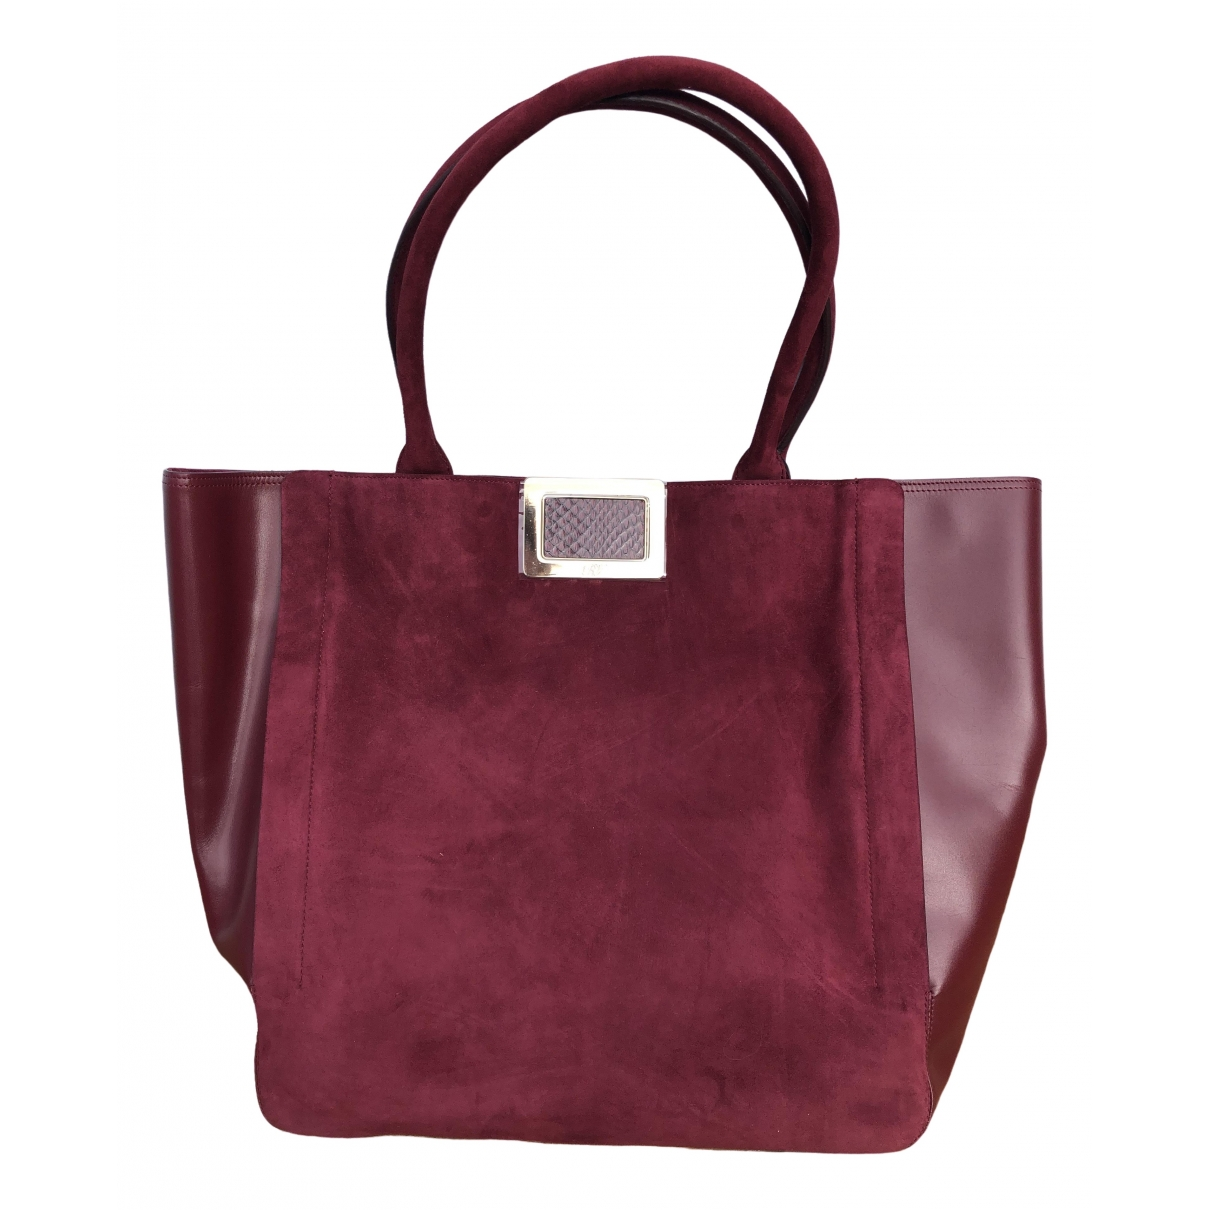 Roger Vivier \N Burgundy Suede handbag for Women \N